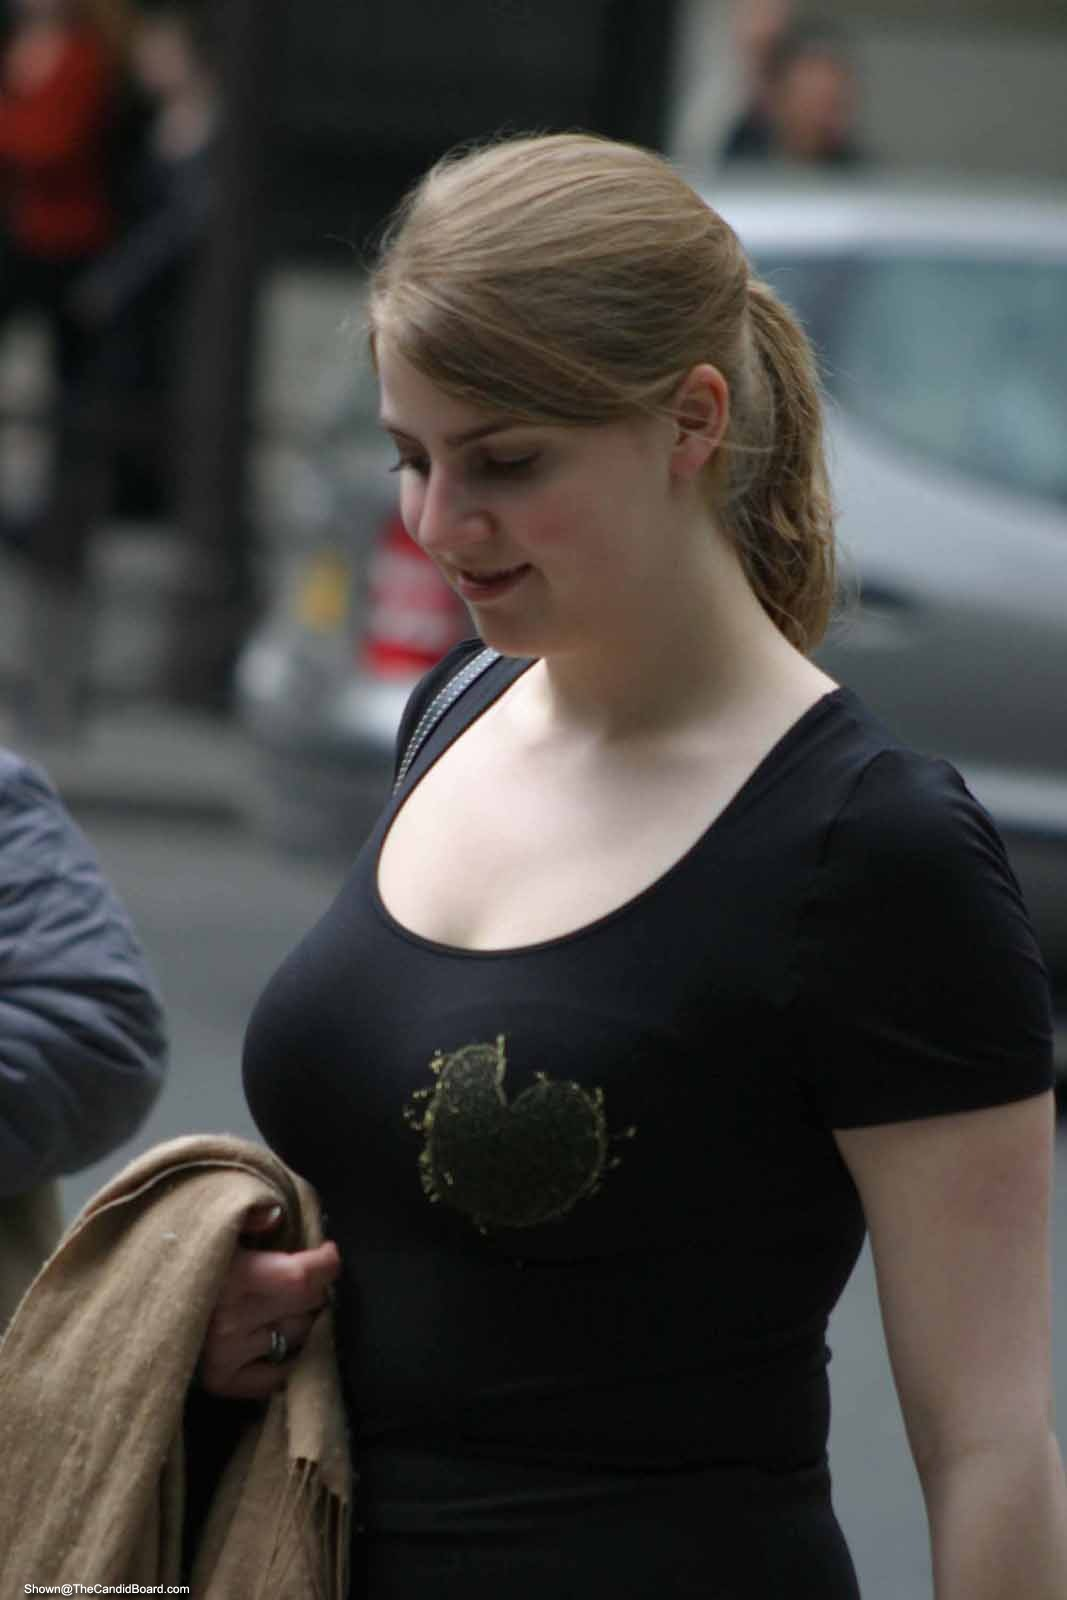 Big Breast Girls Candid Juggs Are The Best-3548